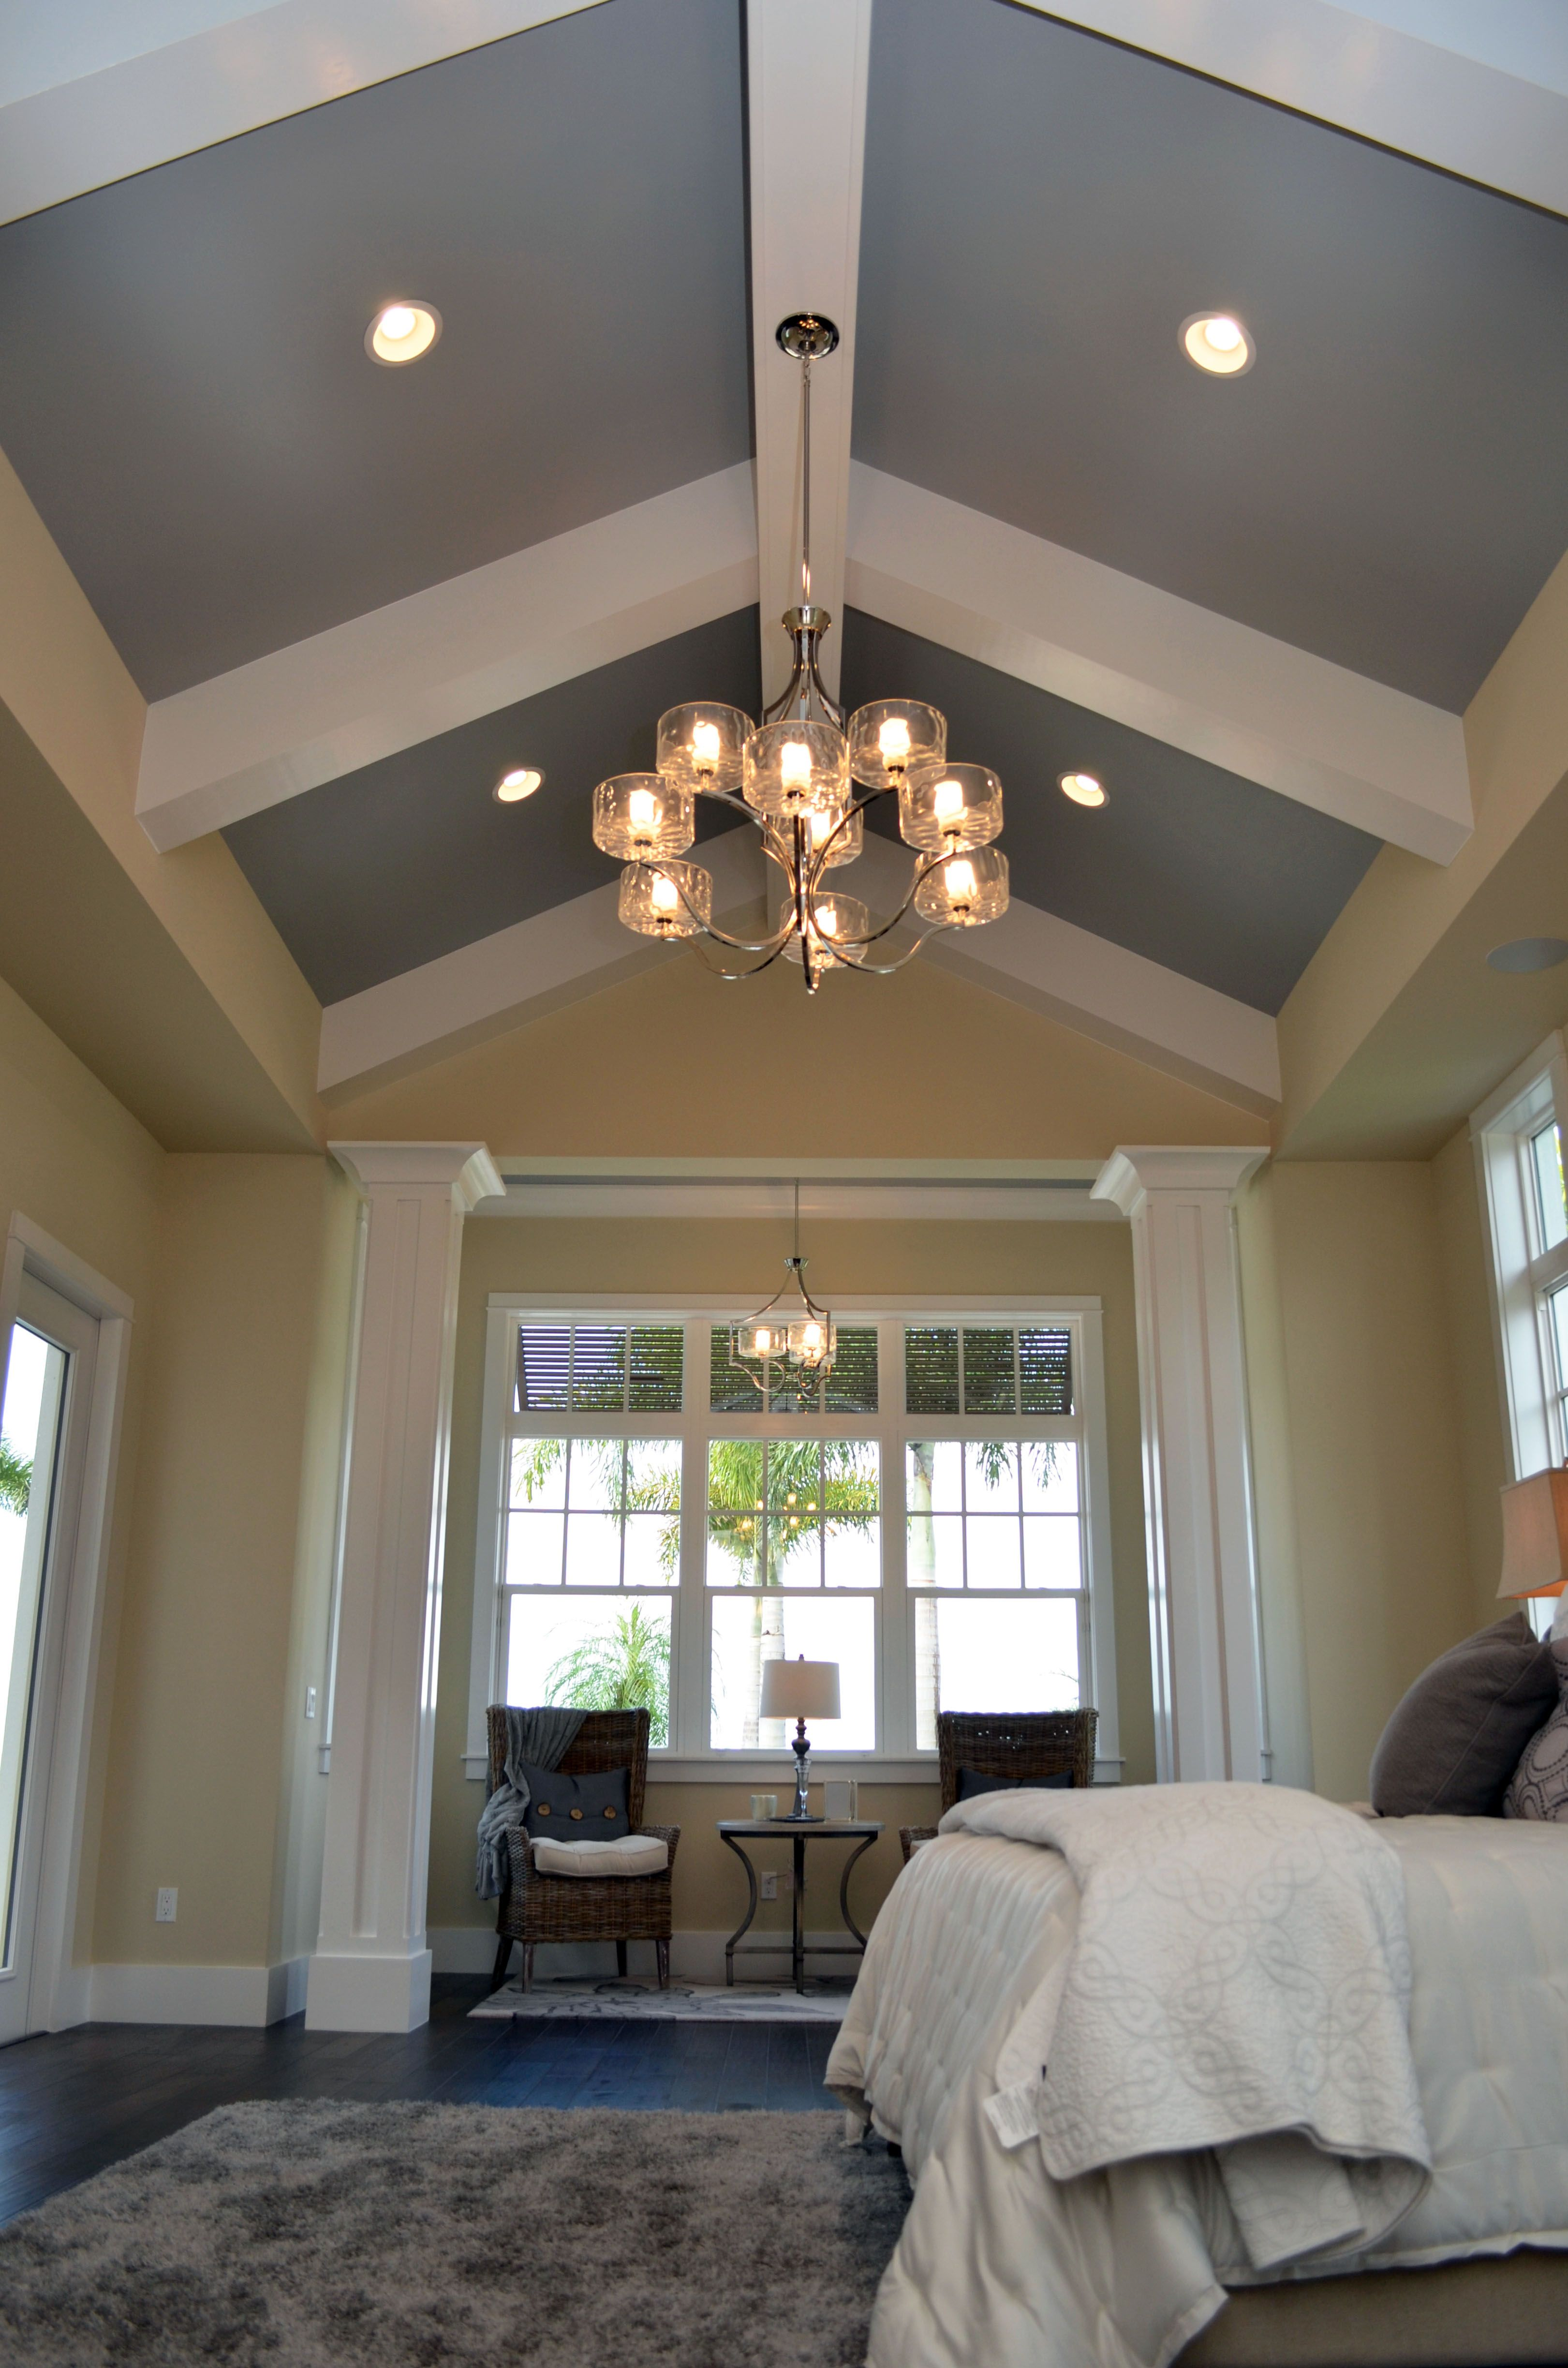 Lighting Vaulted Ceiling Master Bedroom Lighting Vaulted